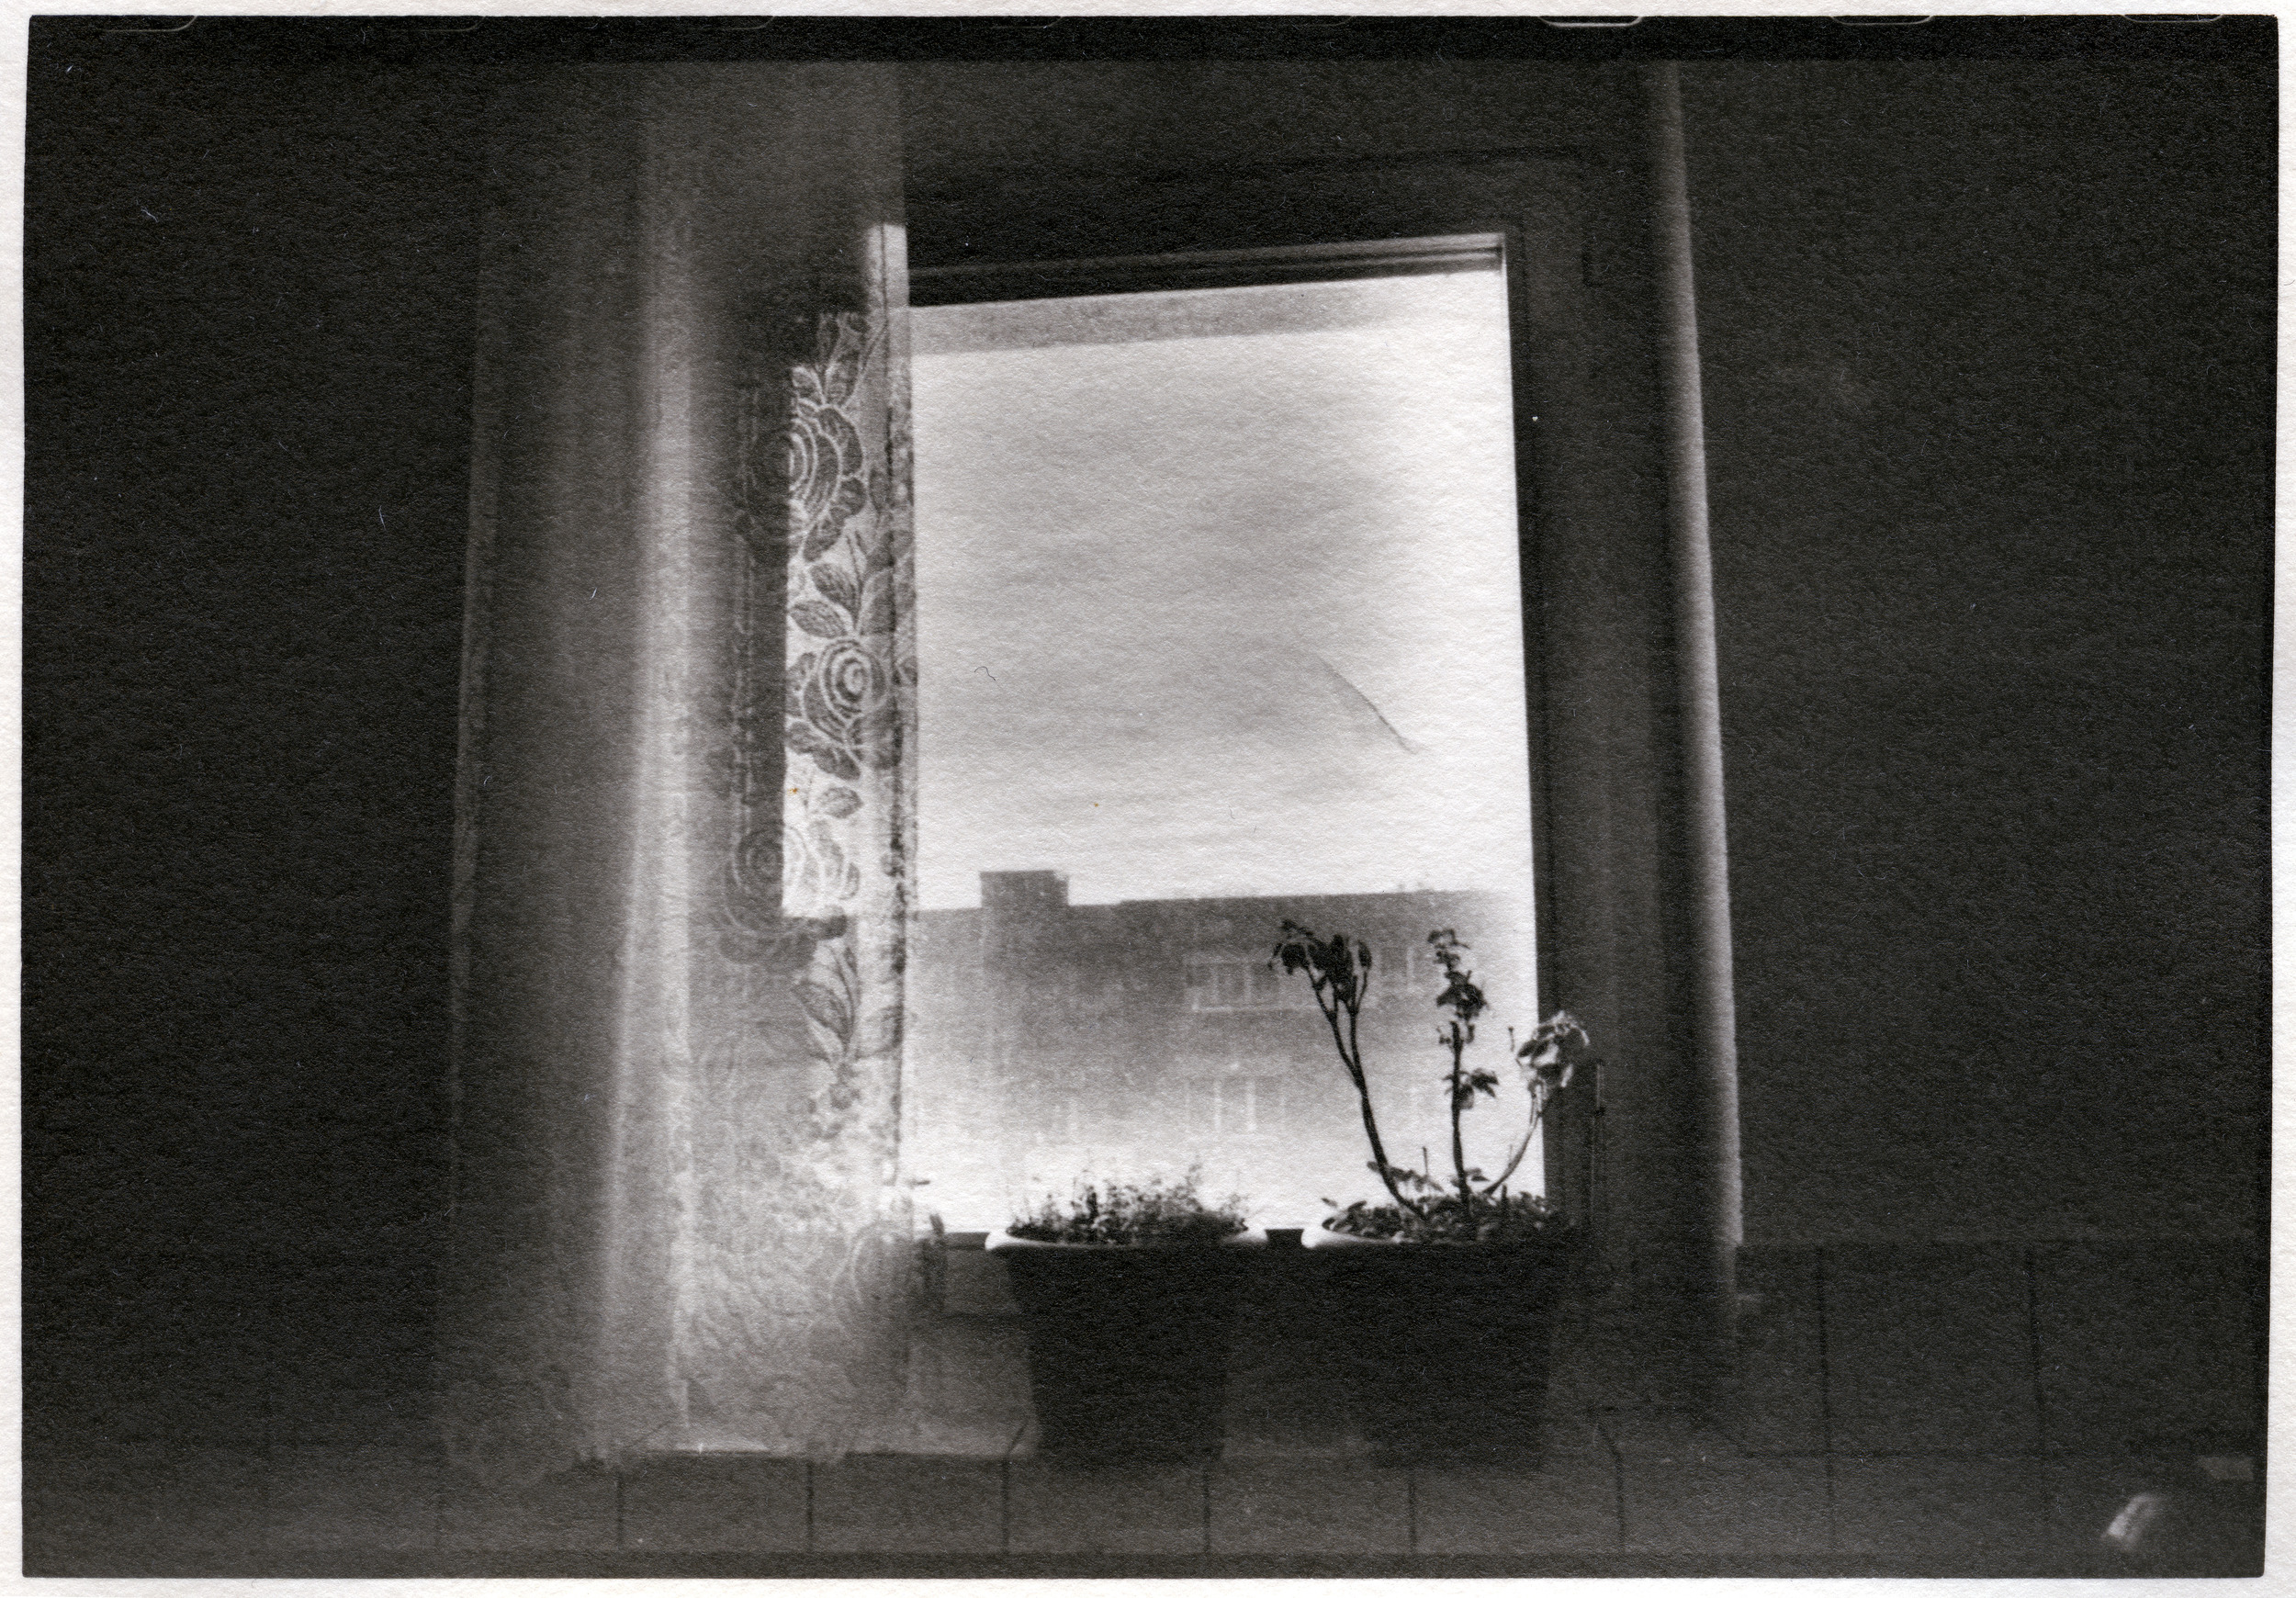 Kitchen    Silver Gelatin Print, Switzerland, 2014